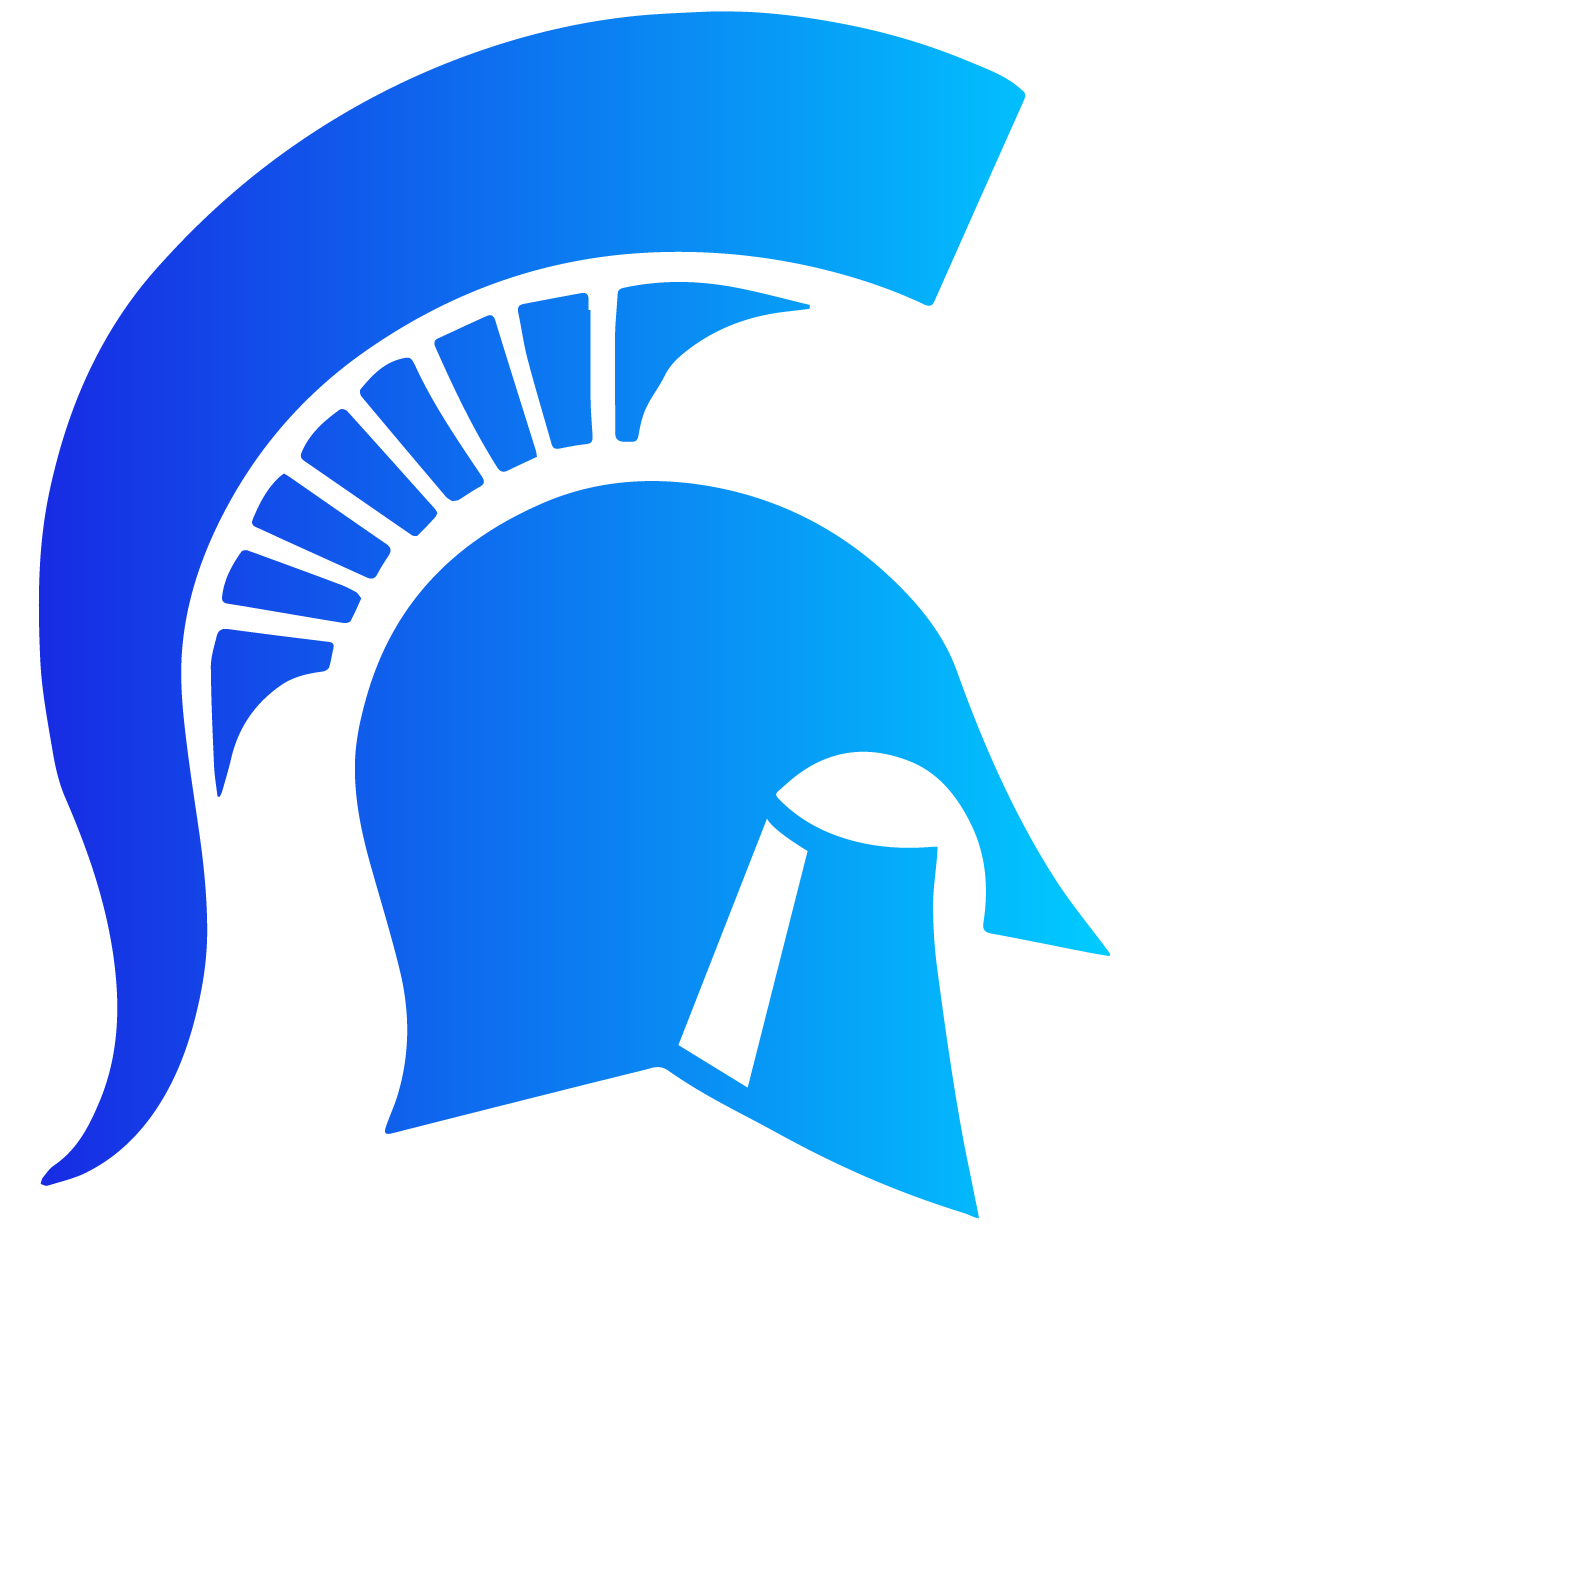 Free basketball clipart blue spartan svg transparent library Michigan State University Michigan State Spartans men's basketball ... svg transparent library